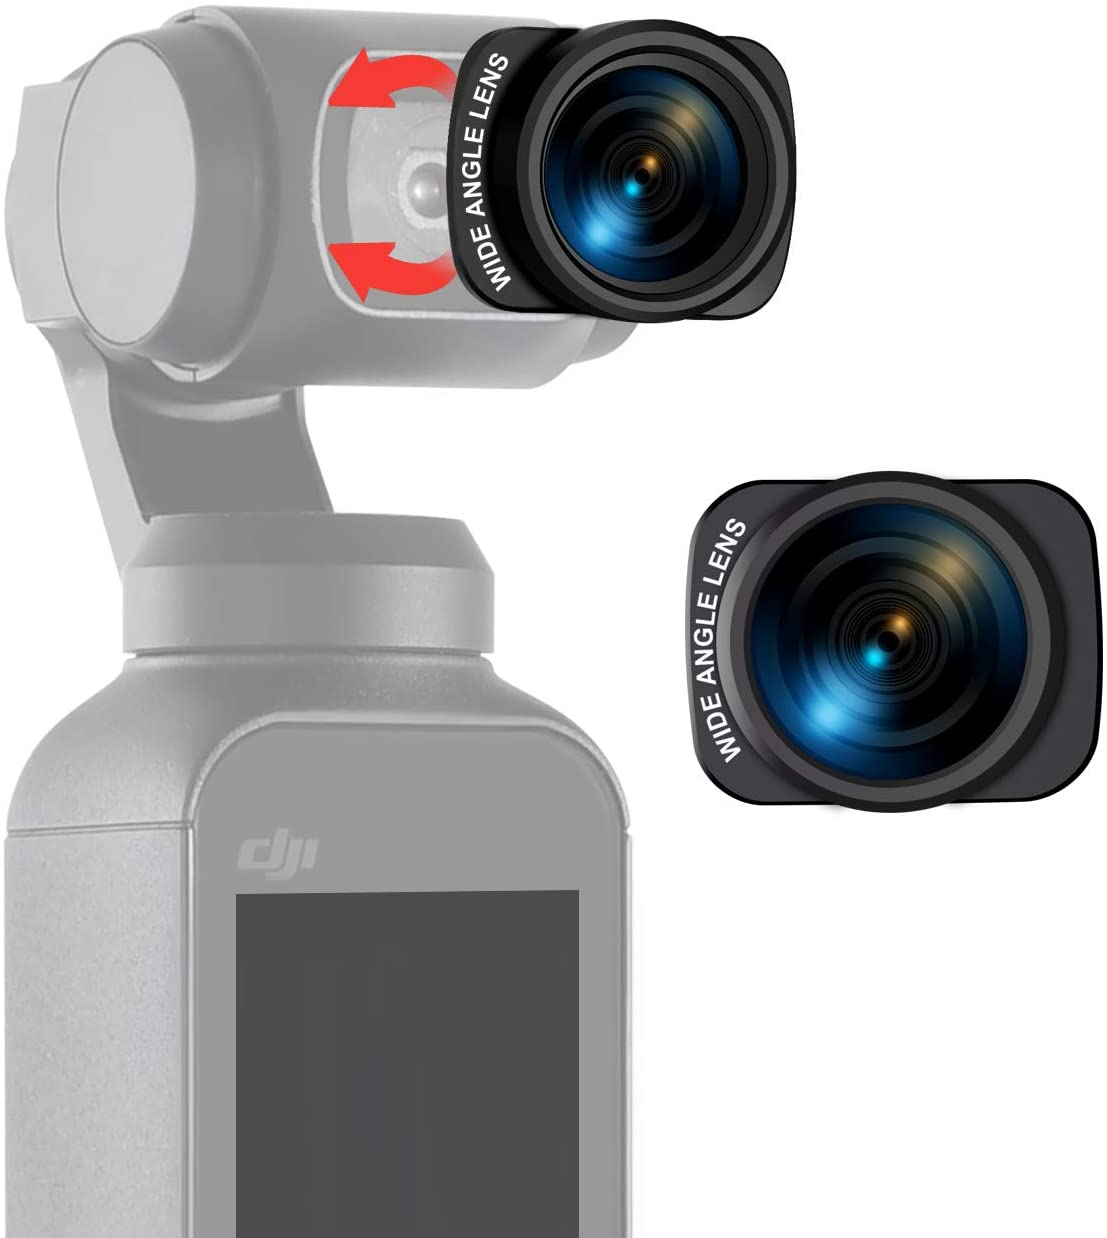 USKEYVISION OSMO Pocket Magnetic Lens for DJI OSMO Pocket Gimbal Camera (UVWL-OP1)